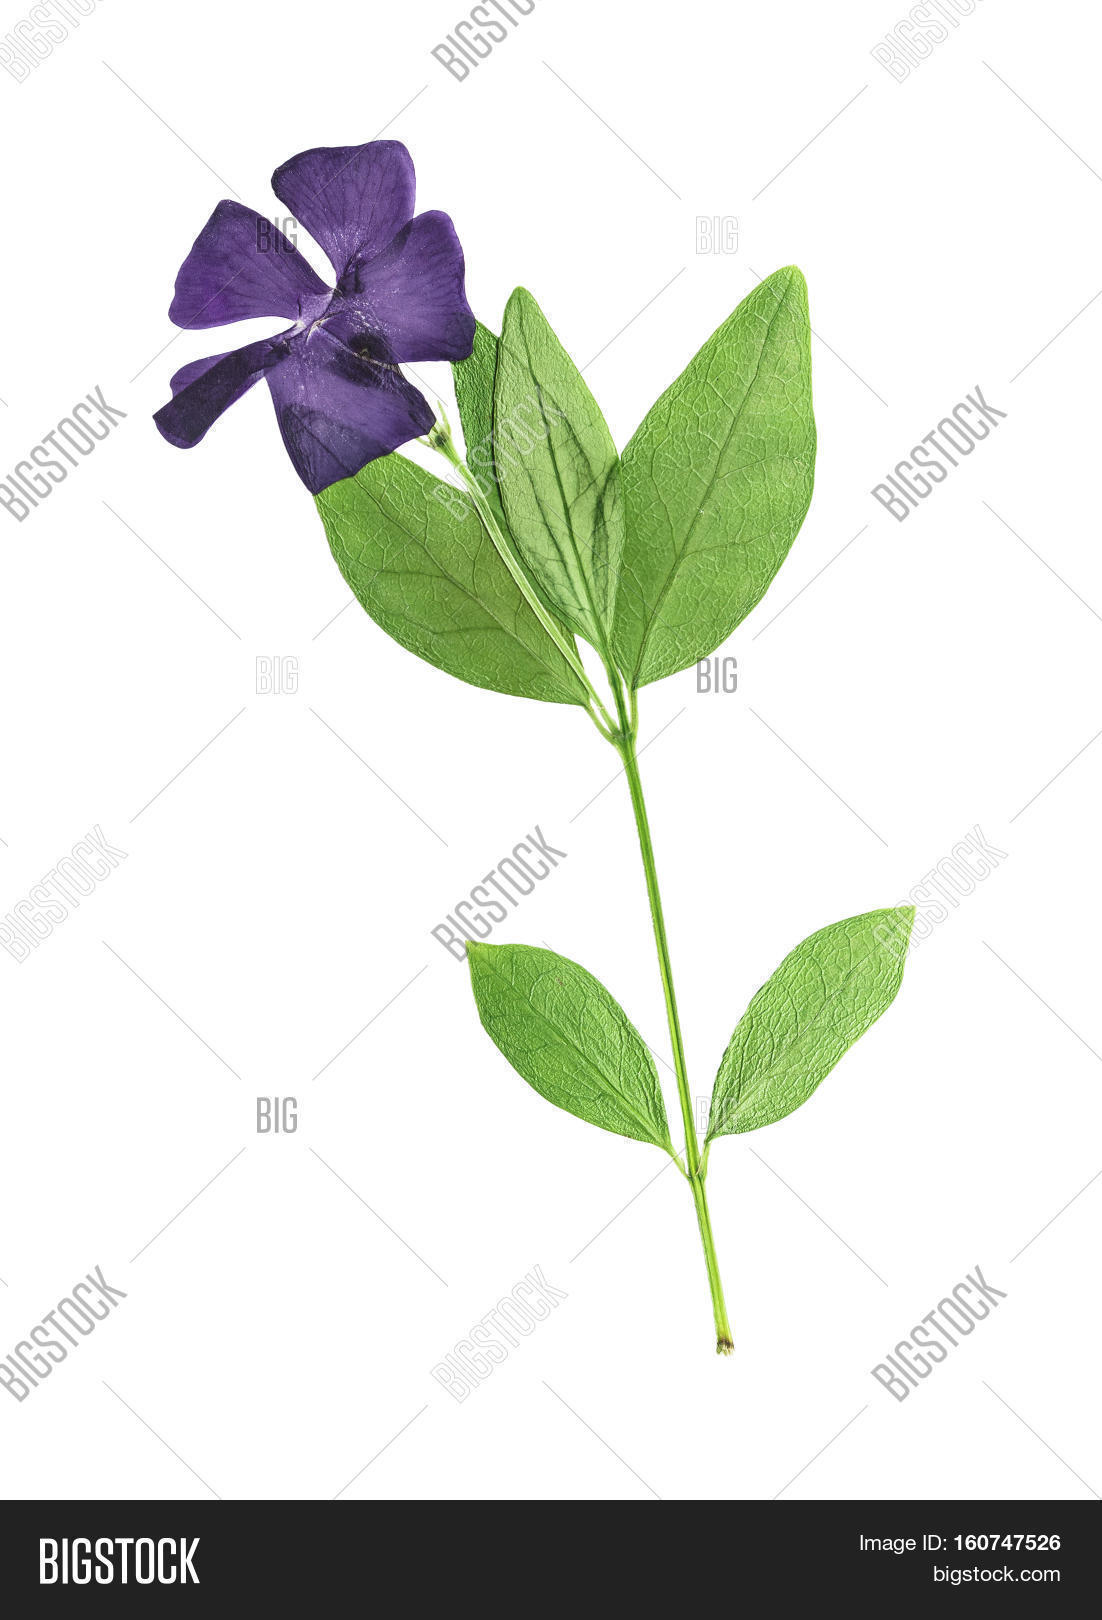 How to scrapbook dried flowers - Pressed And Dried Flowers Periwinkle Vinca Minor On Stem With Green Leaves Isolated